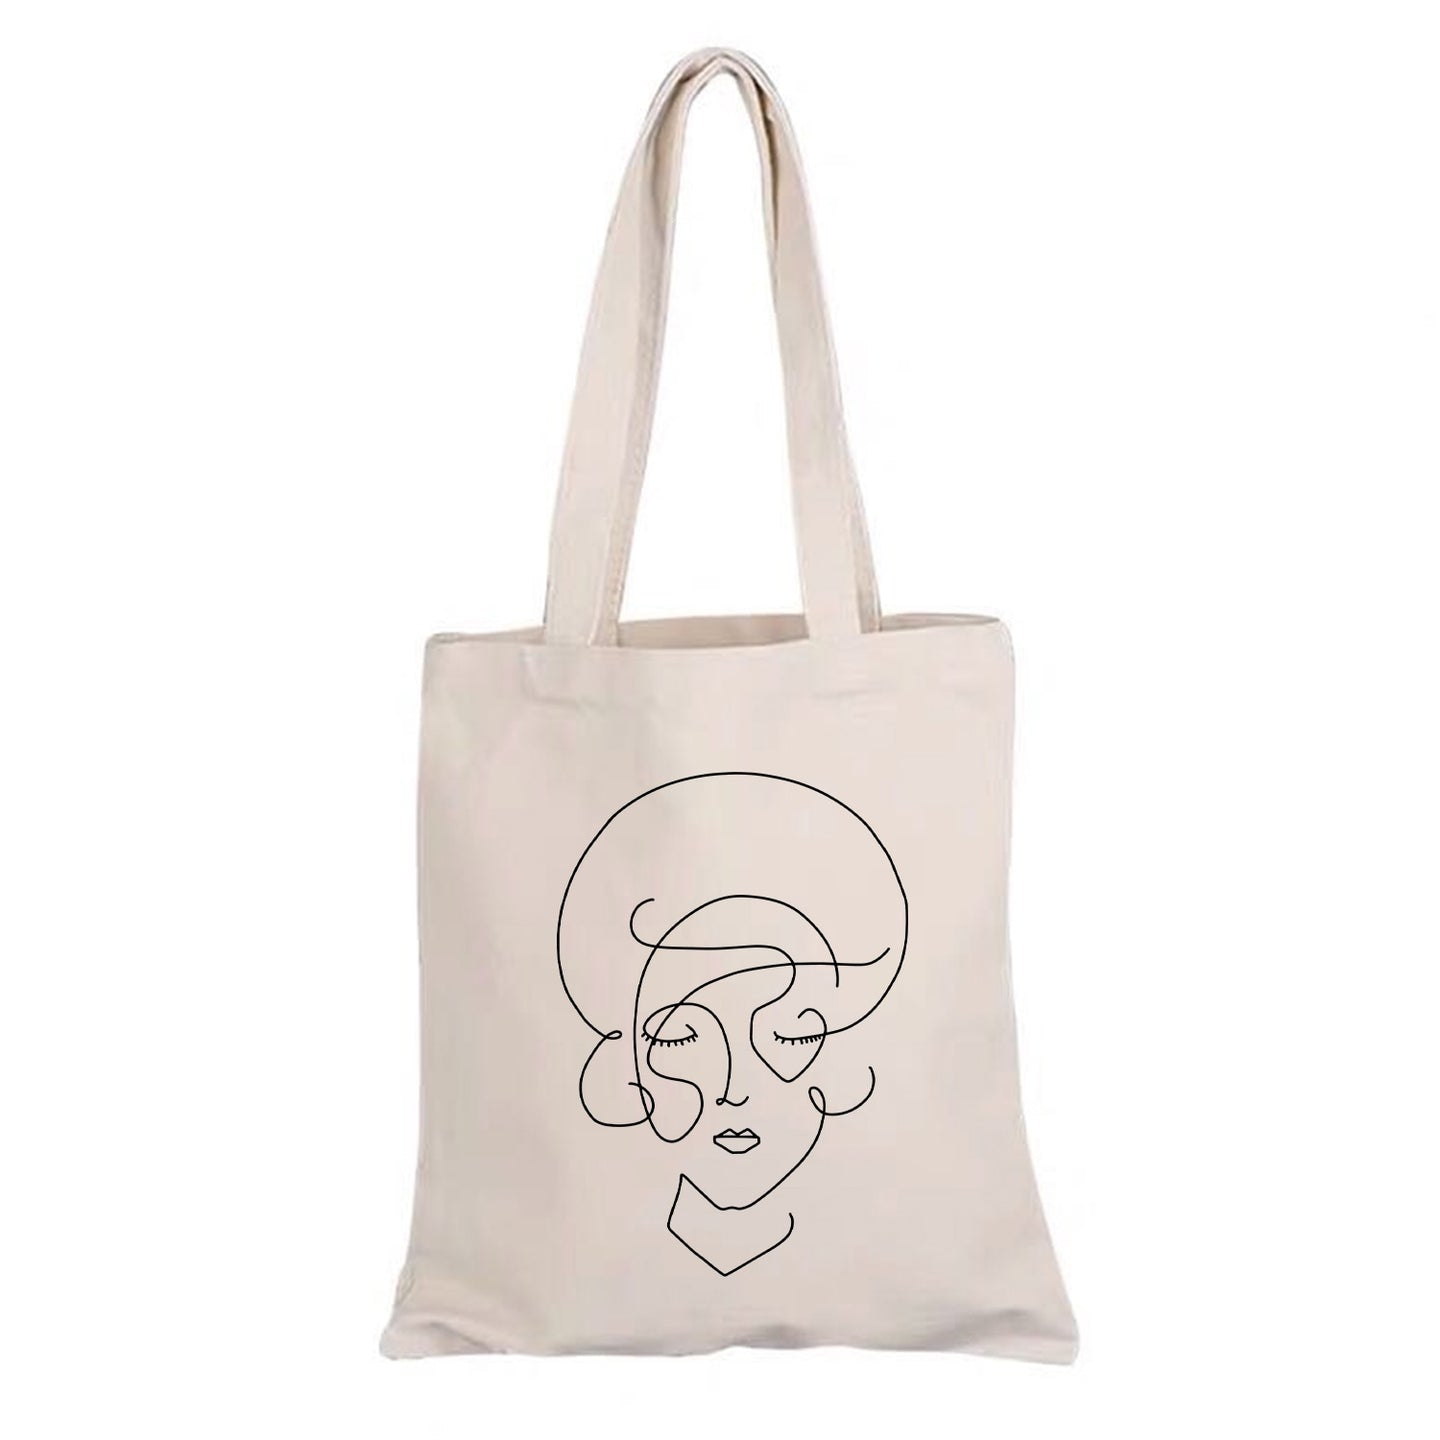 Fabric Minimalist Women Tote